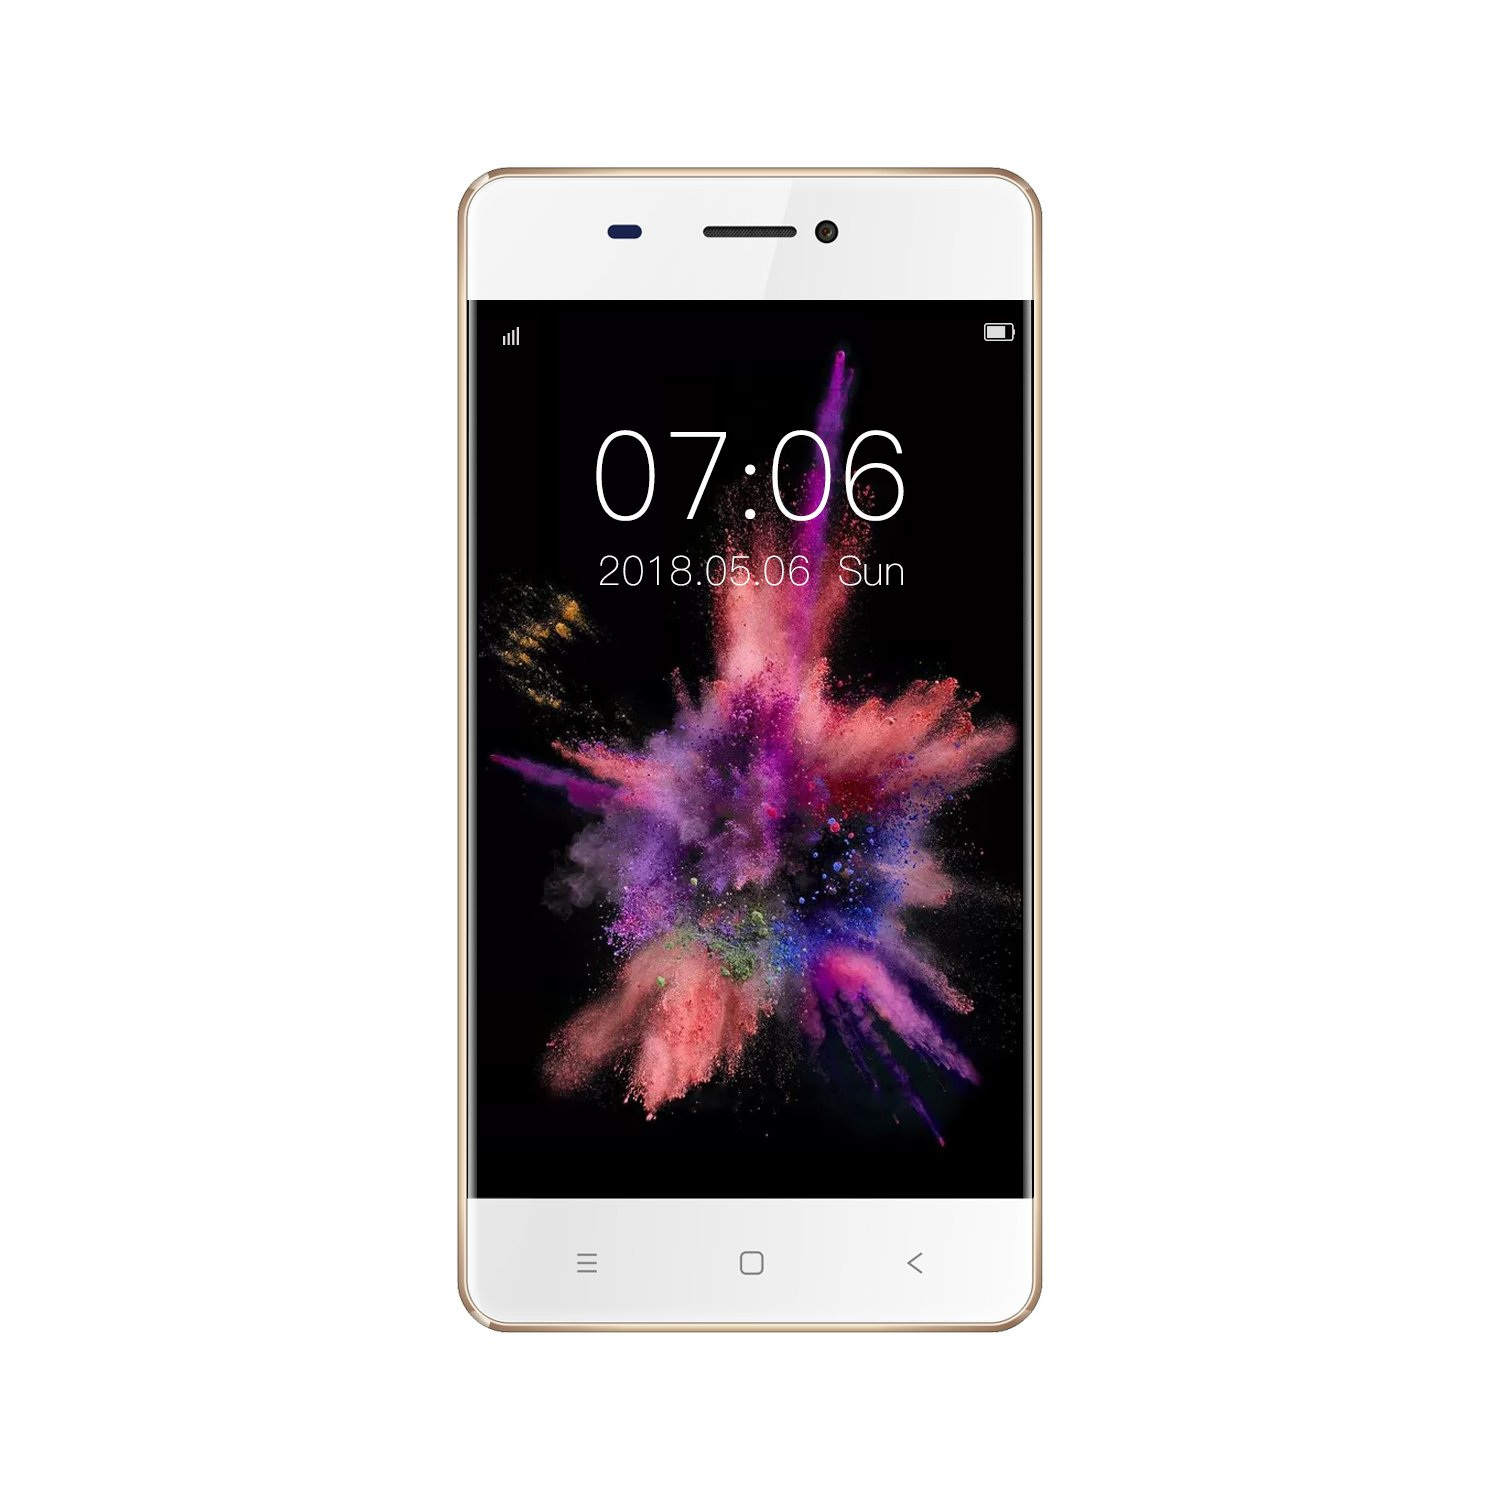 KEN XIN DA V6 Dual SIM Unlocked Smartphone 4.5 Inches Display Android 7.0 8G+1G Memory GSM 3G Cell Phones (Gold) …